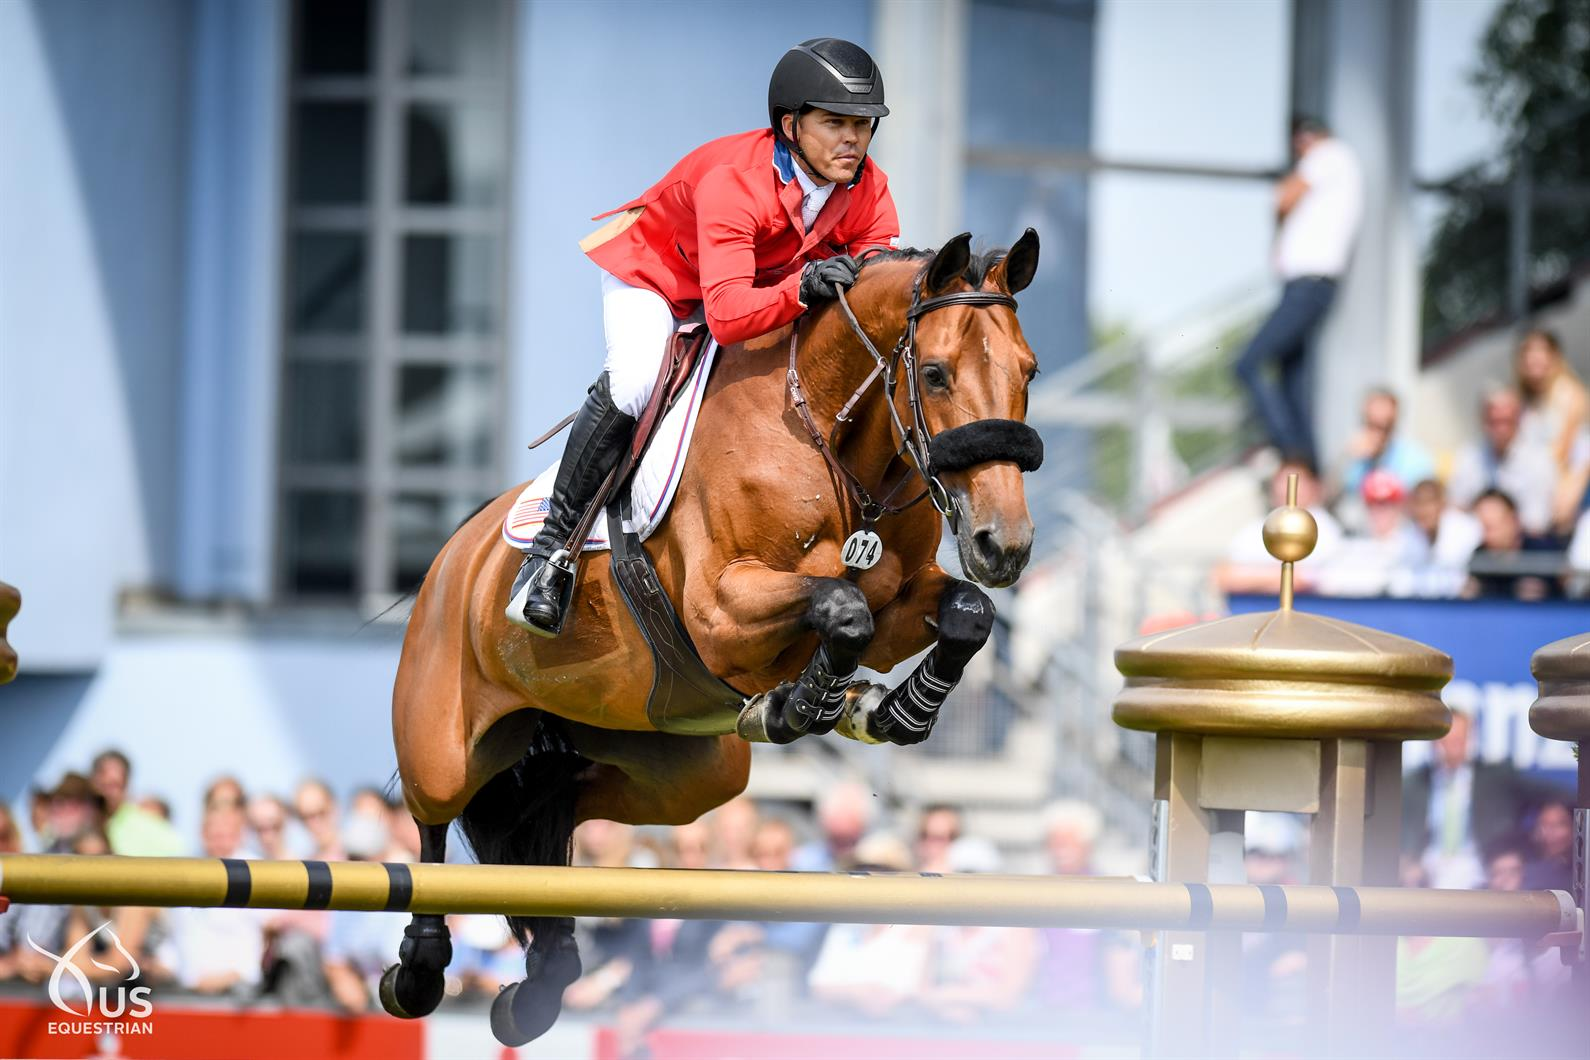 Kent Farrington and Gazelle making light work of the 1.60m 3-round Grand Prix at Aachen. Photo by US Equestrian.